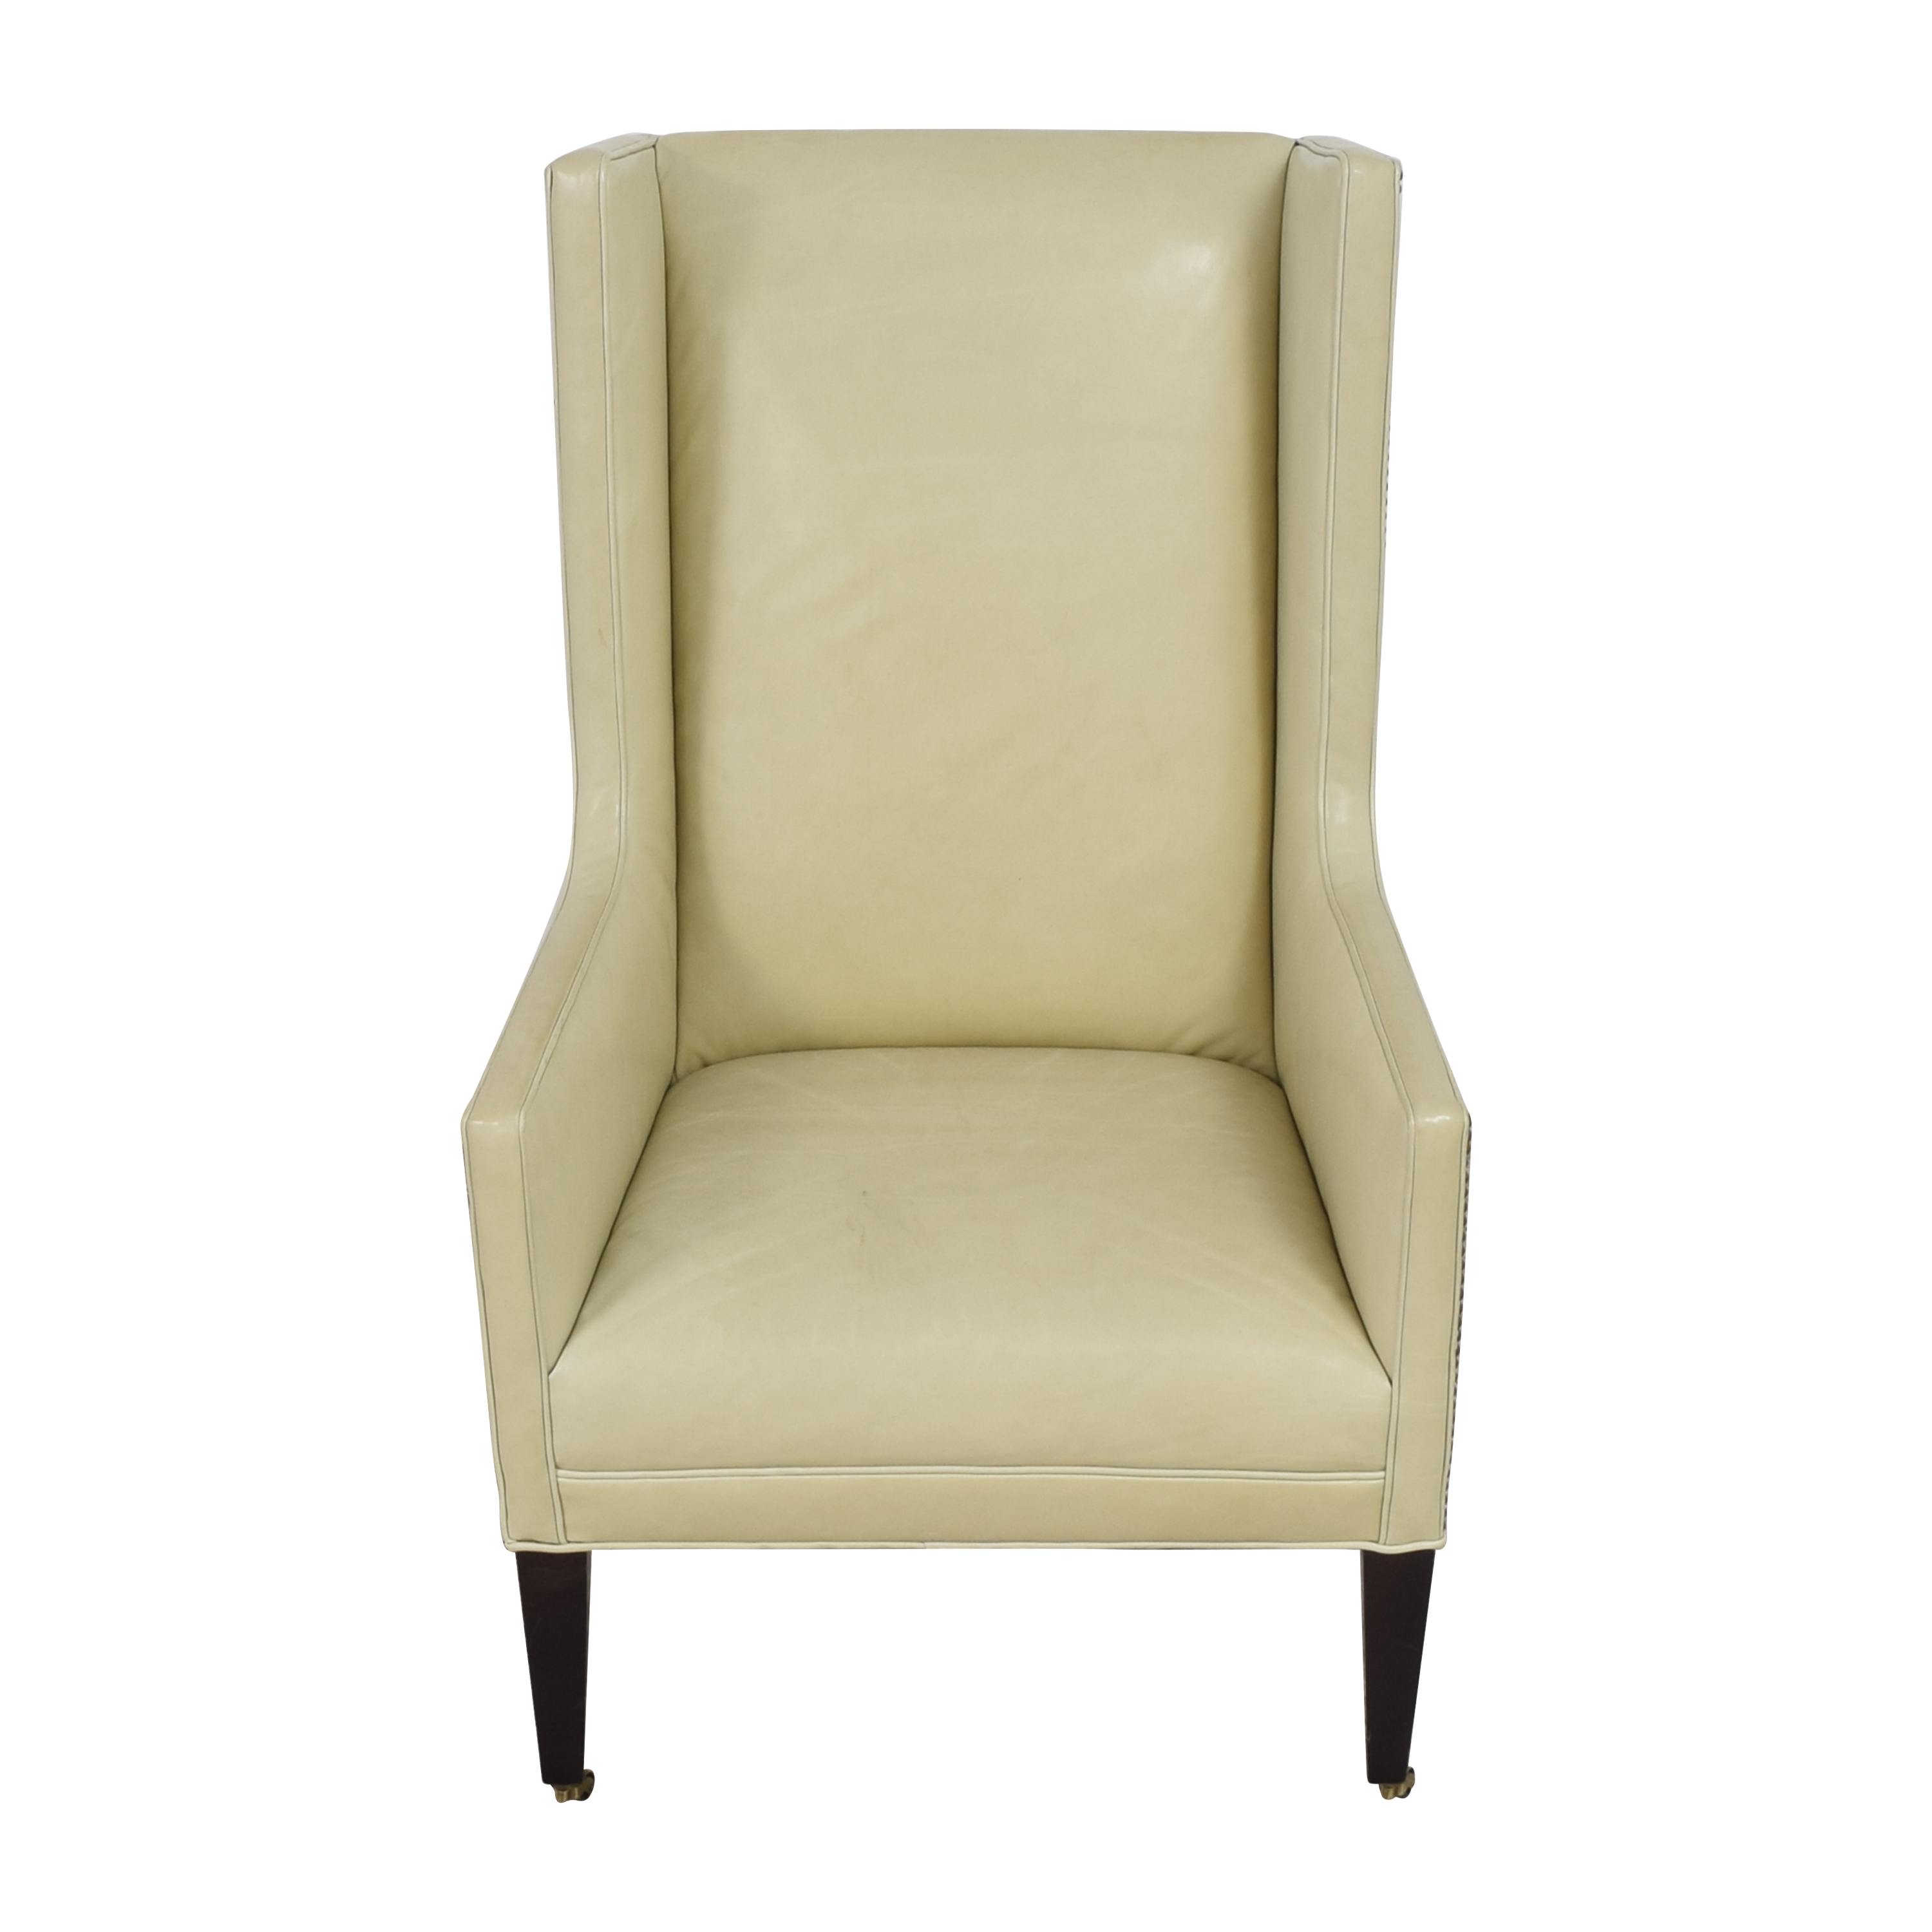 Mitchell Gold + Bob Williams Mitchell Gold + Bob Williams Wing Back Chair coupon